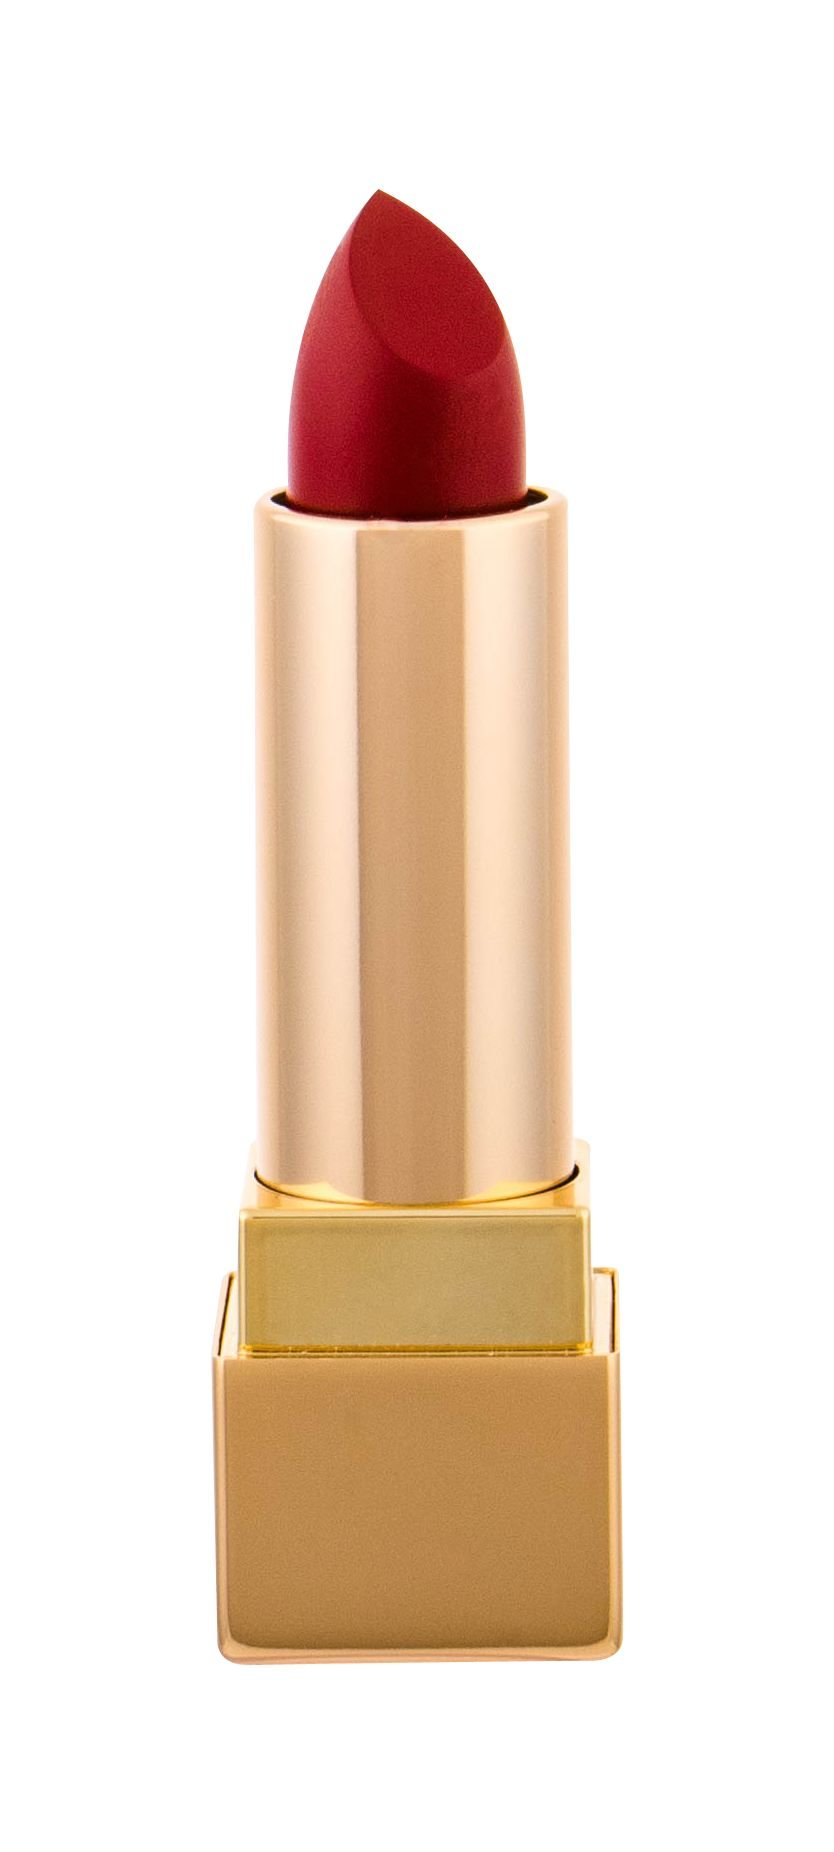 Yves Saint Laurent Rouge Pur Couture Lipstick 3,8ml 204 Rouge Scandal